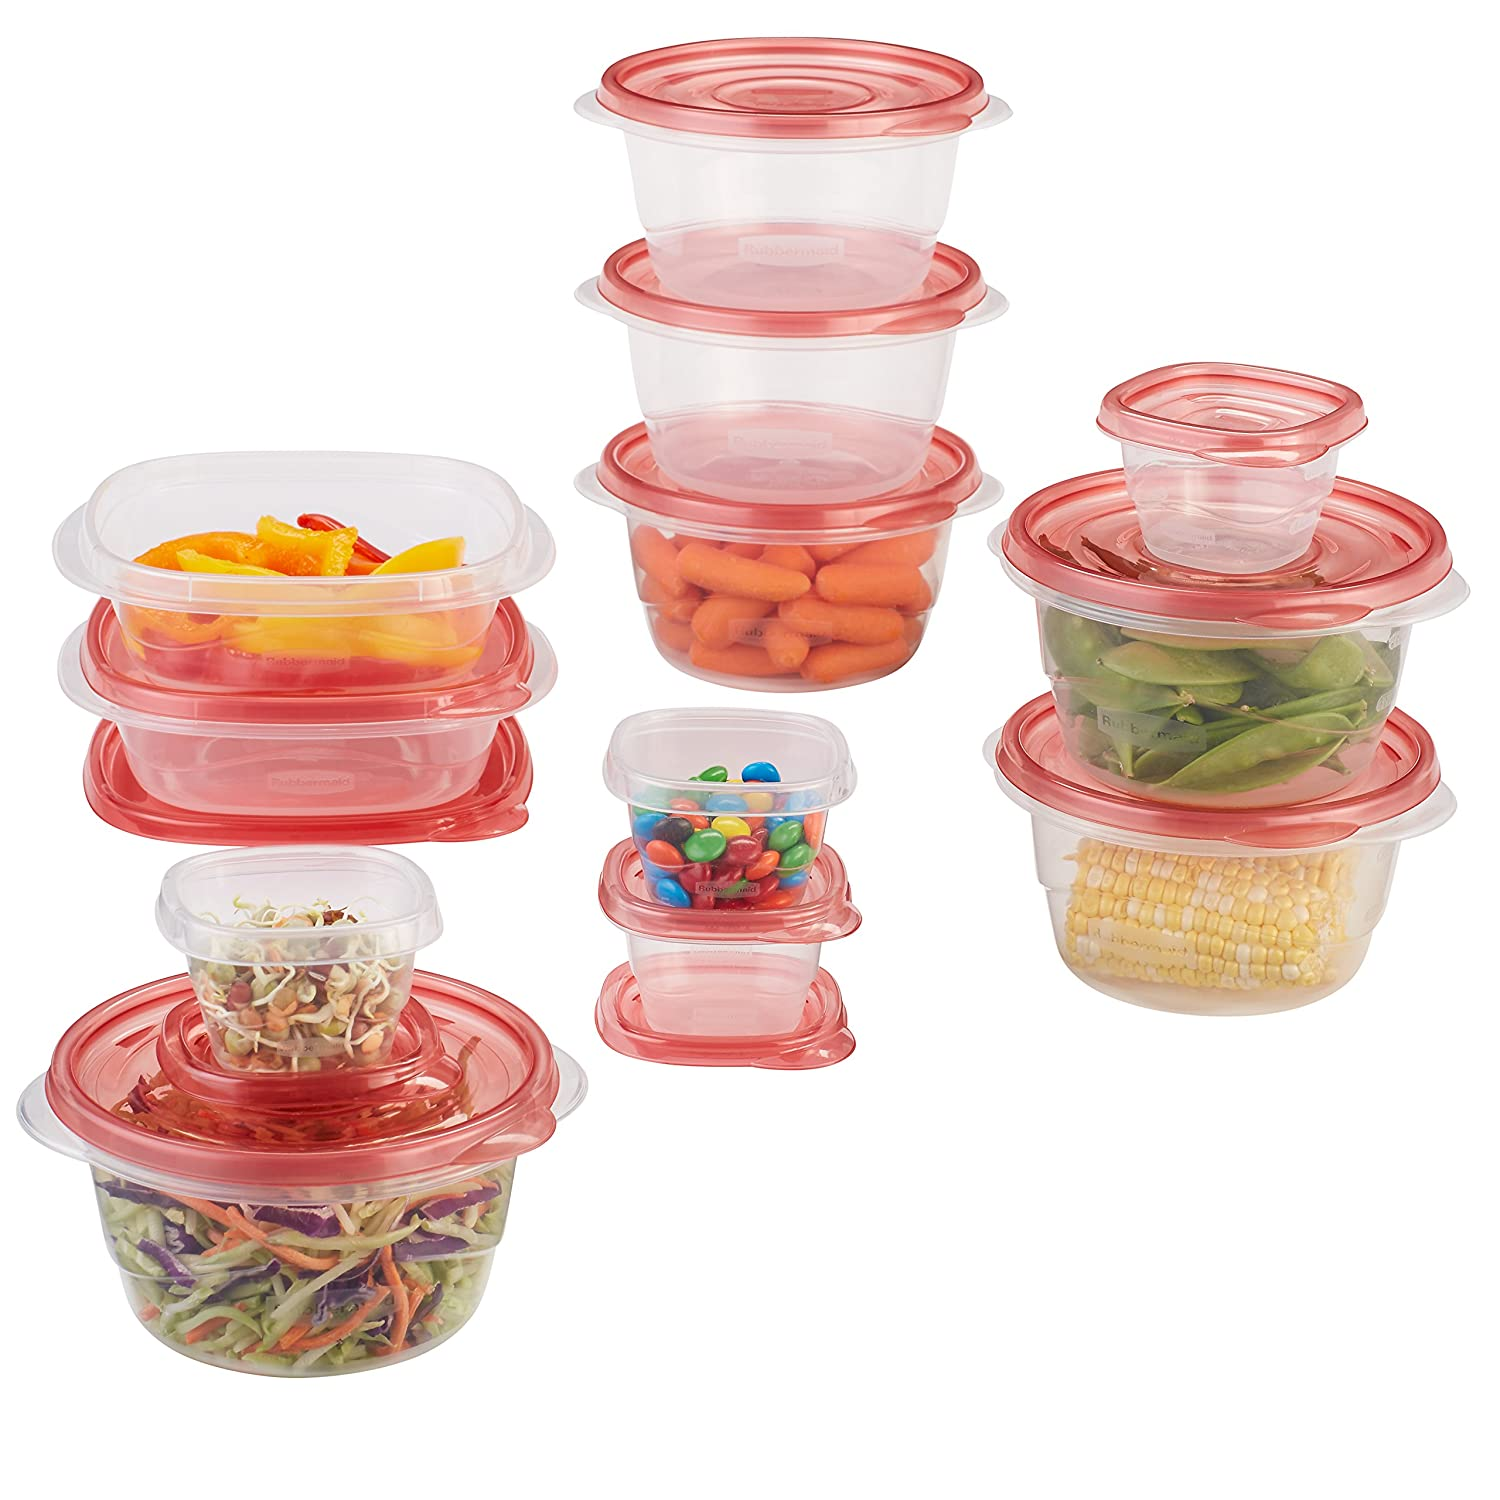 Rubbermaid TakeAlongs Assorted Food Storage Containers, Tint Chili, 12 Count 1807607